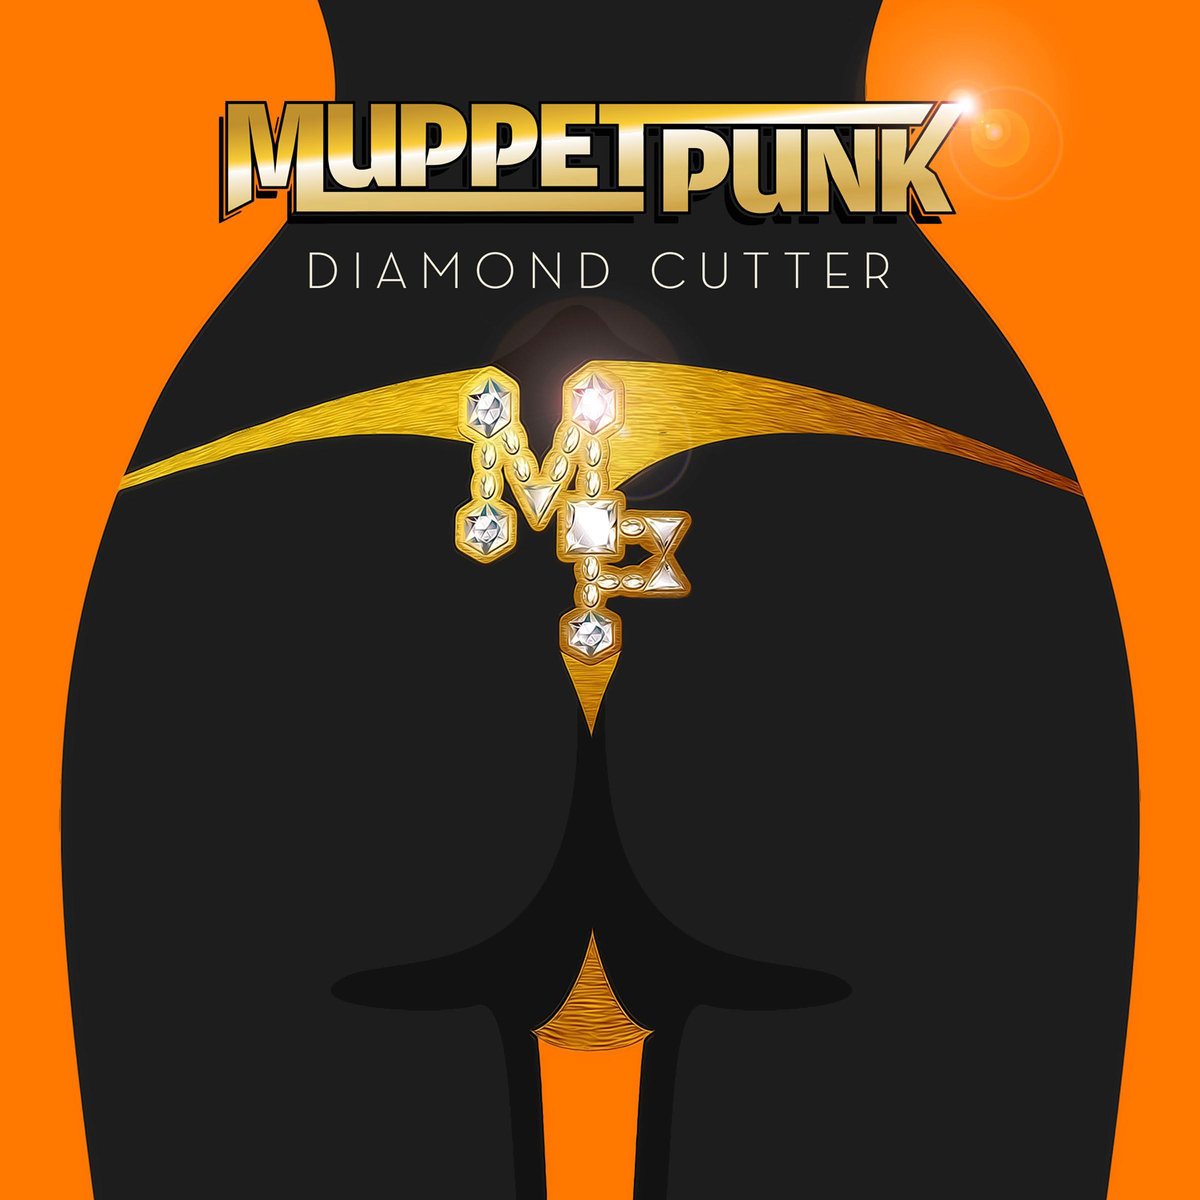 Muppet Punk feat. Devi Genuone - Toopie Hoe @ 'Diamond Cutters' album (bass, devi genuone)